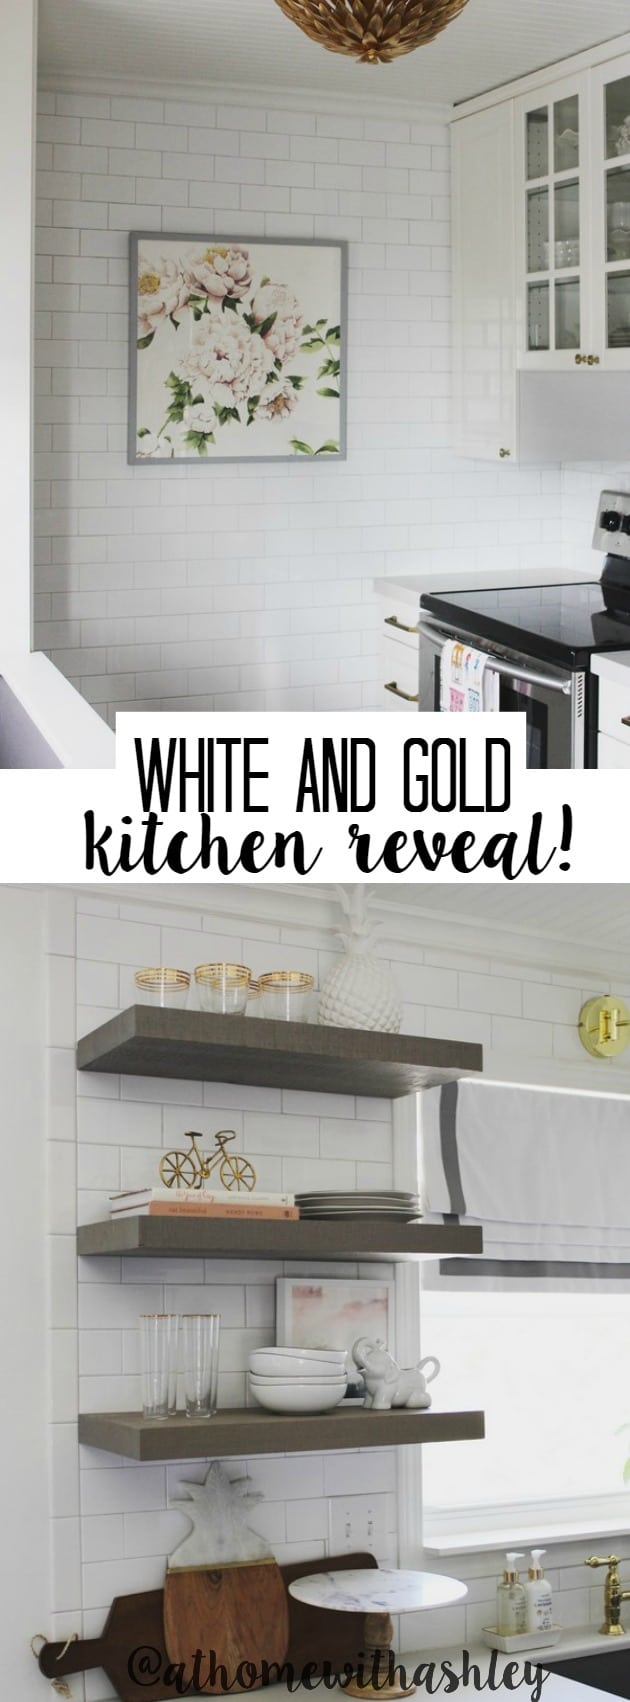 white gold kitchen reveal - at home with Ashley